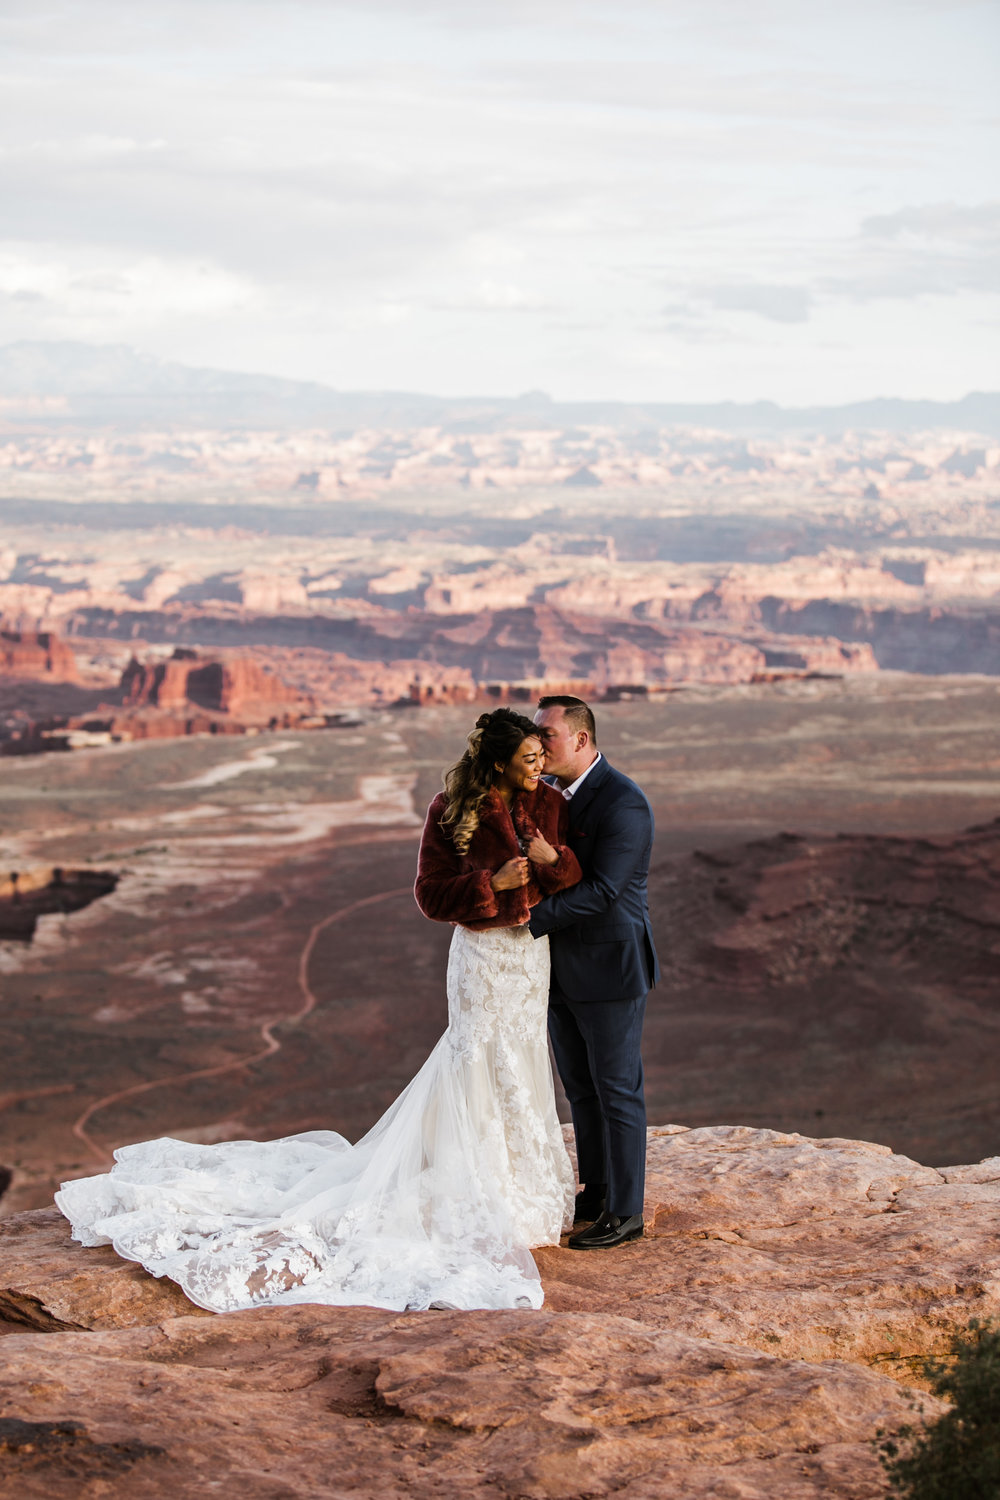 elopement wedding canyonlands national park near moab utah | adventurous desert wedding inspiration | small wedding in utah | the hearnes adventure photography